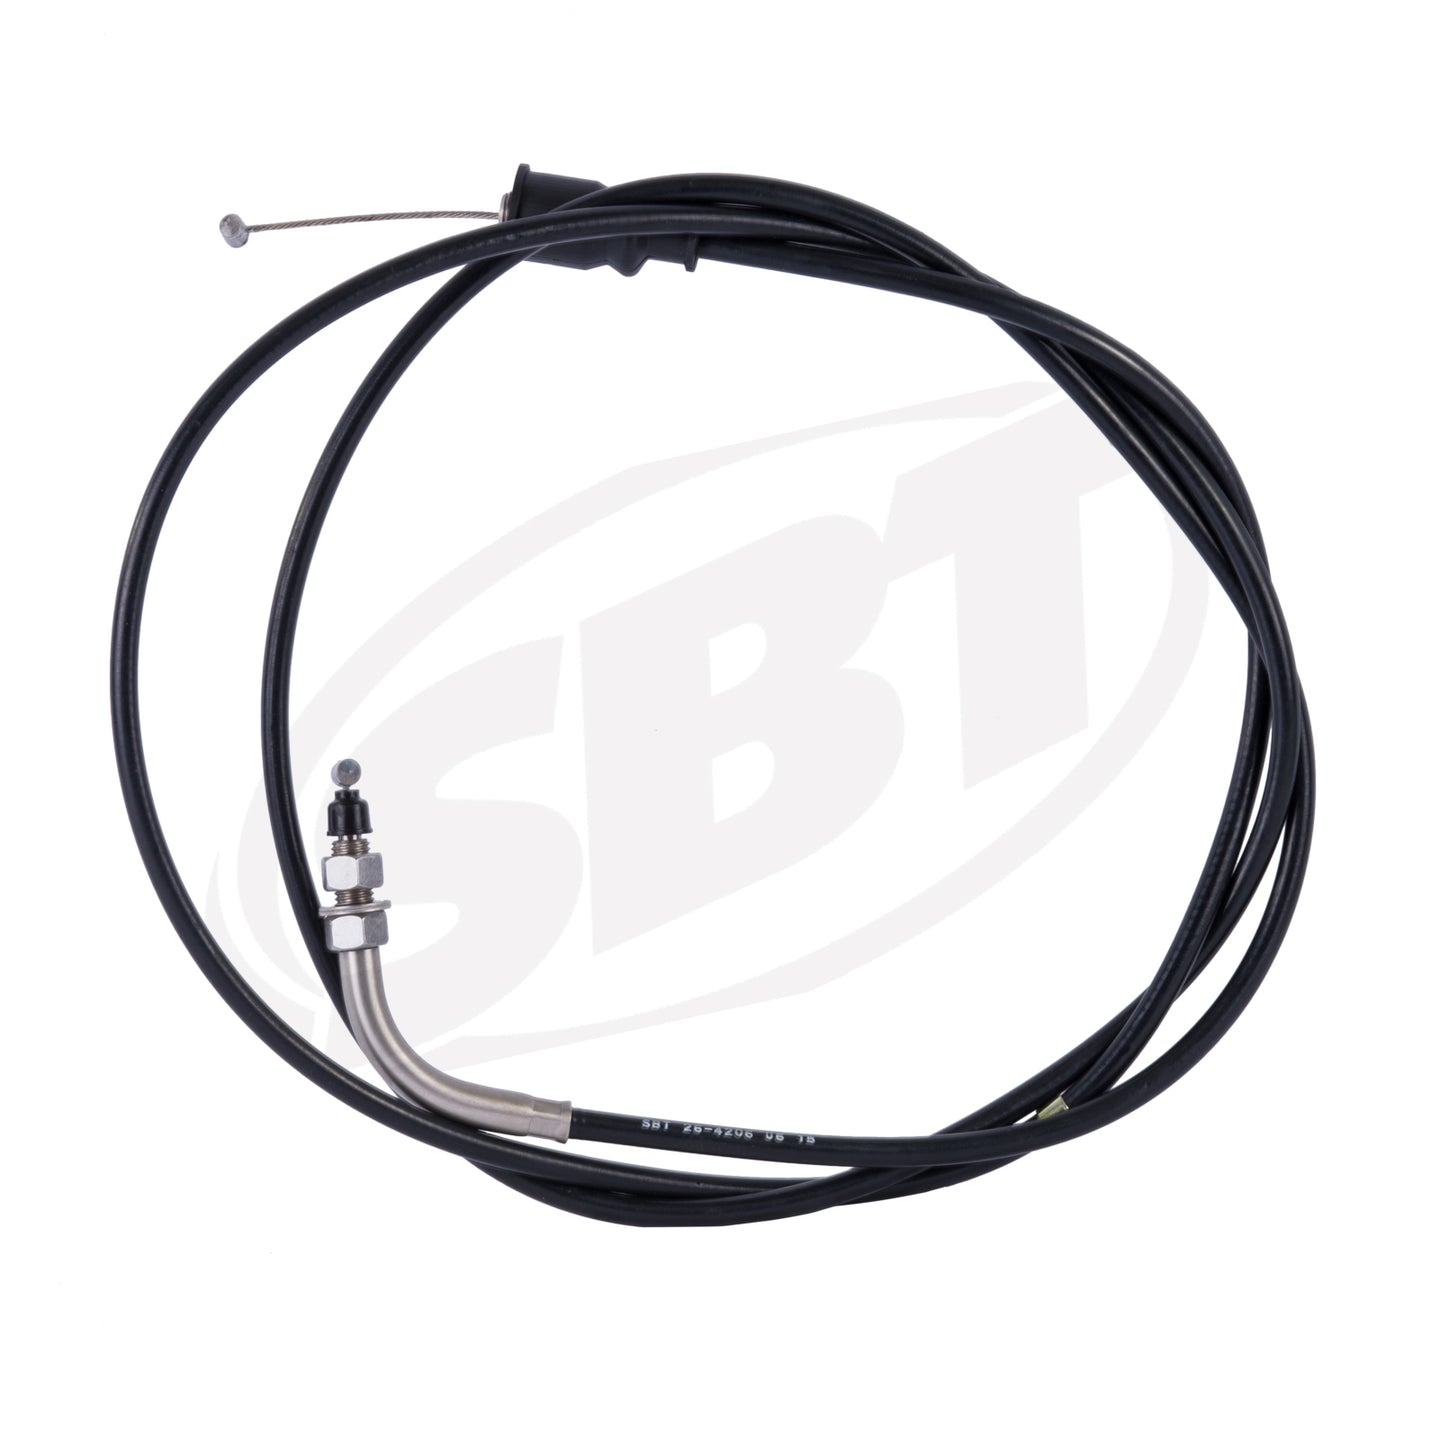 SBT Kawasaki Throttle Cable JS 650 SX 54012-3706 1987 1988 1989 1990